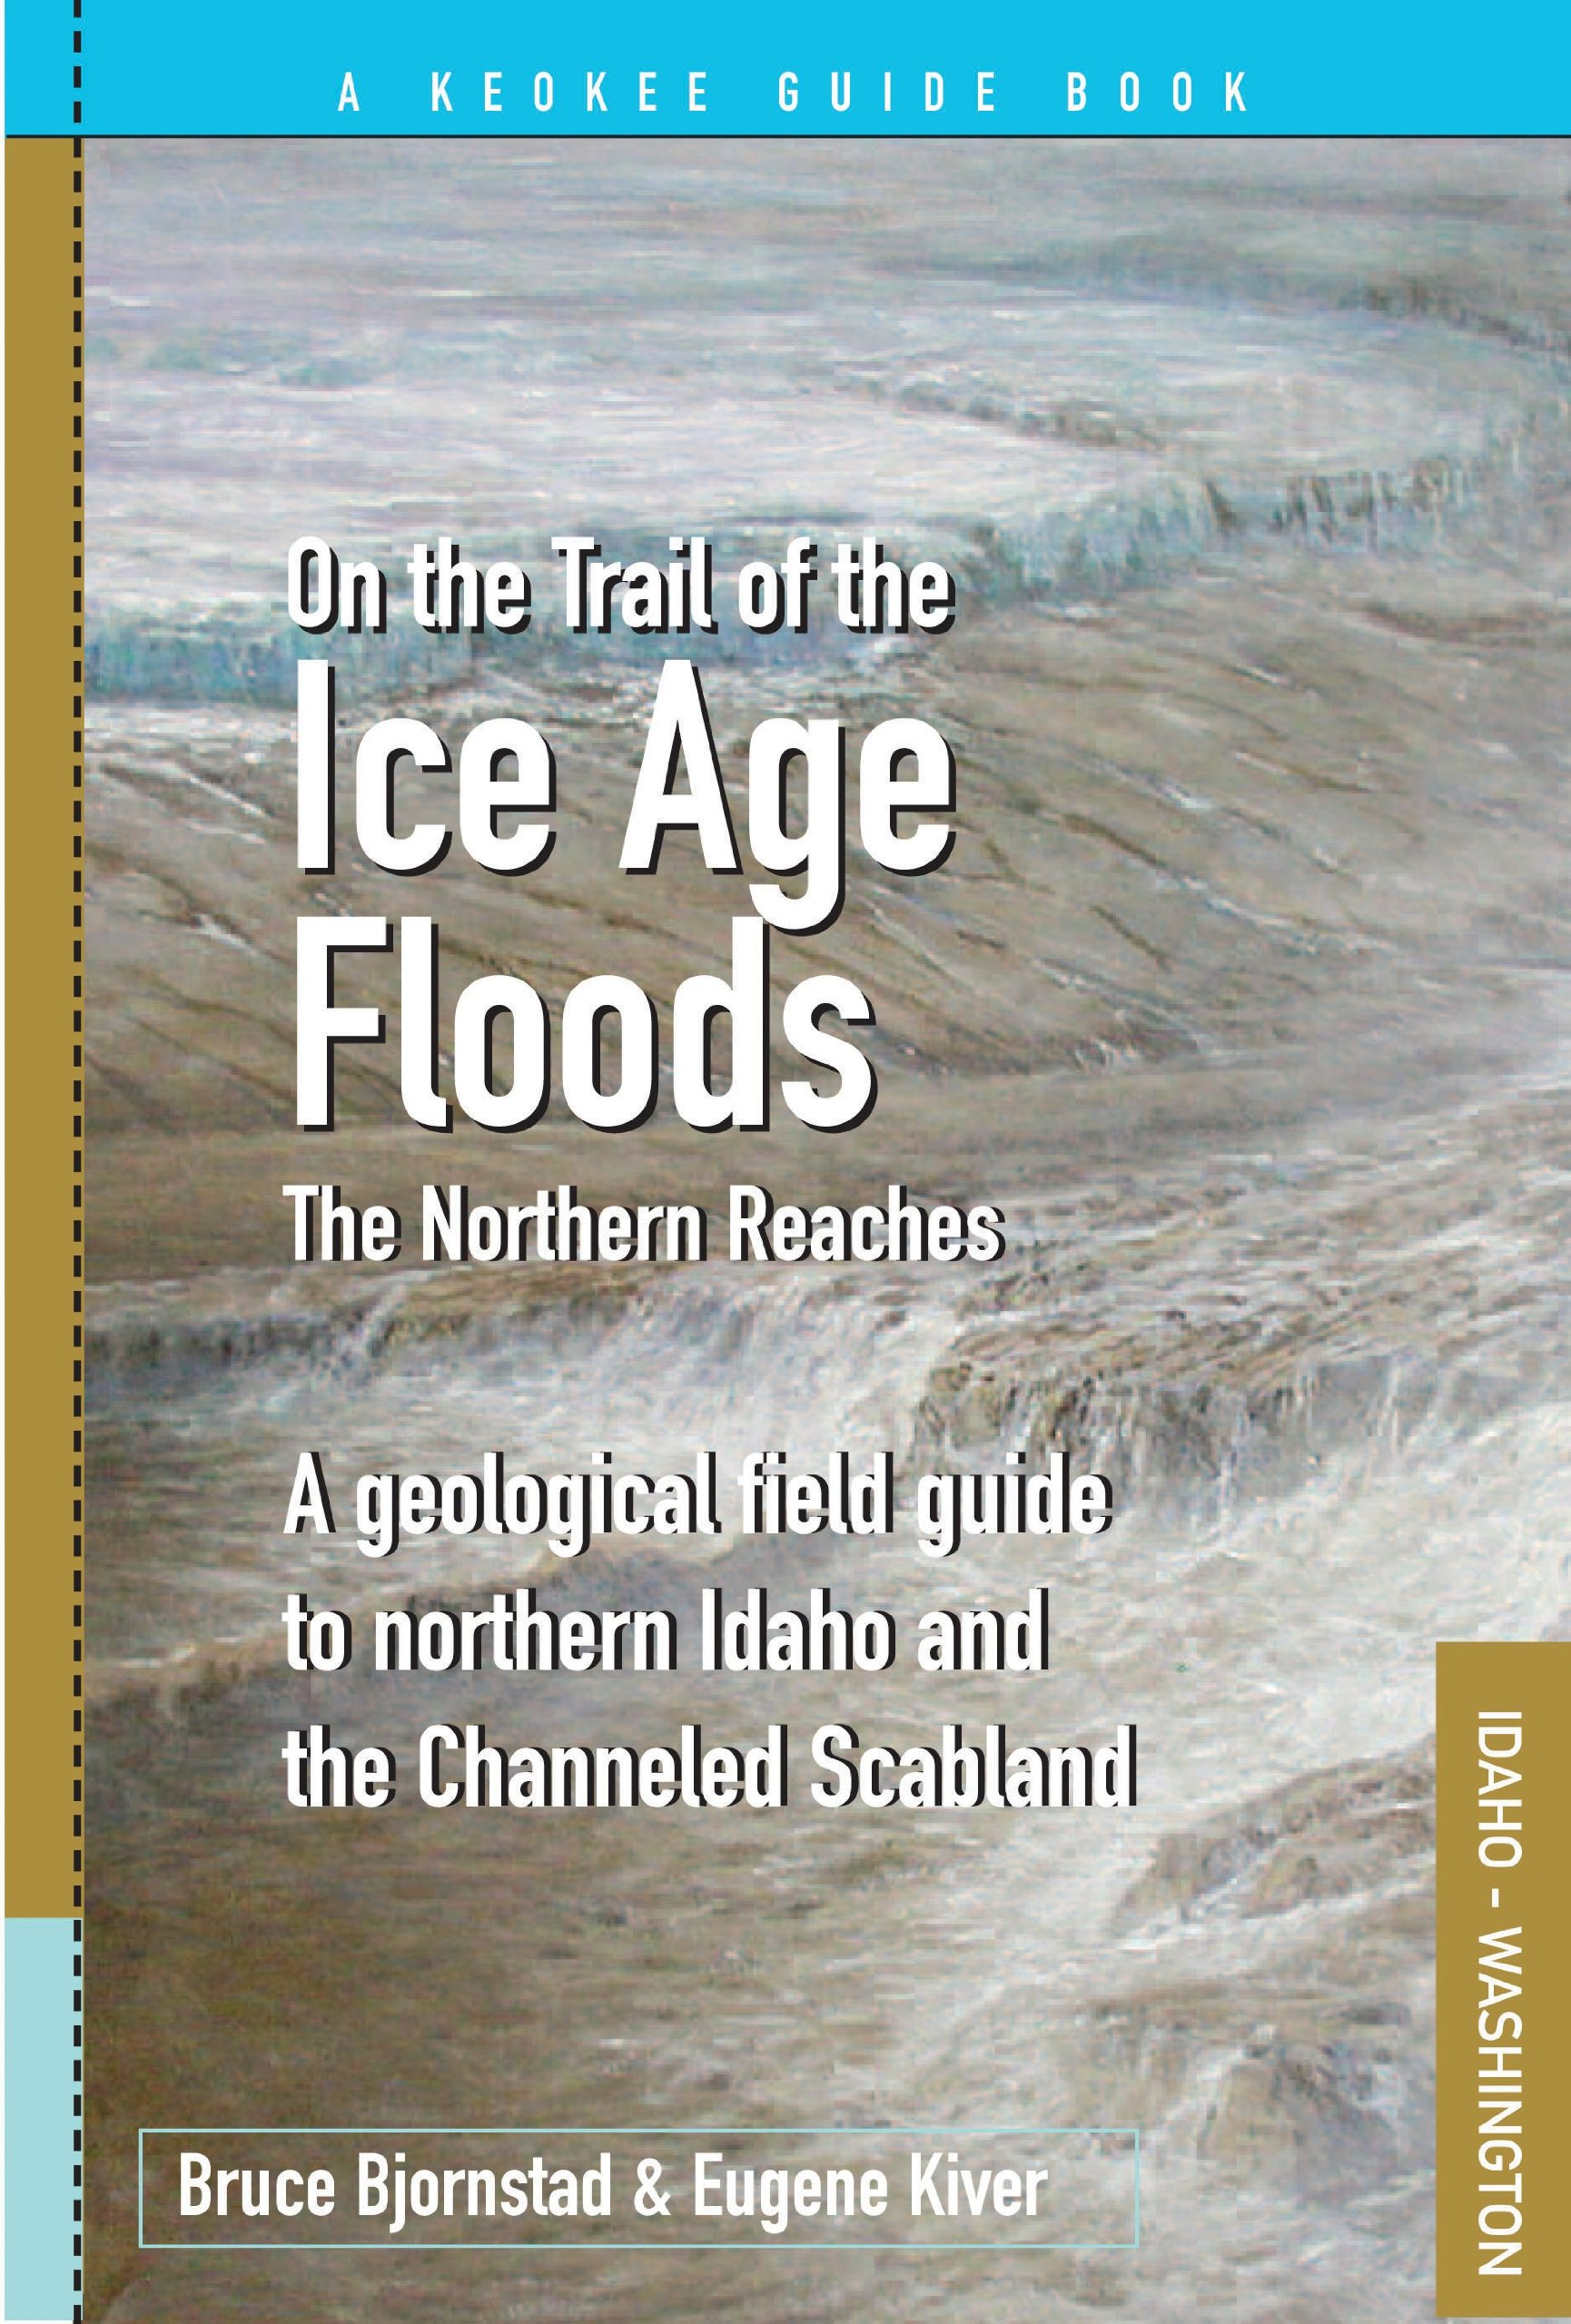 On the Trail of the Ice Age Floods - Northern Reaches PDF